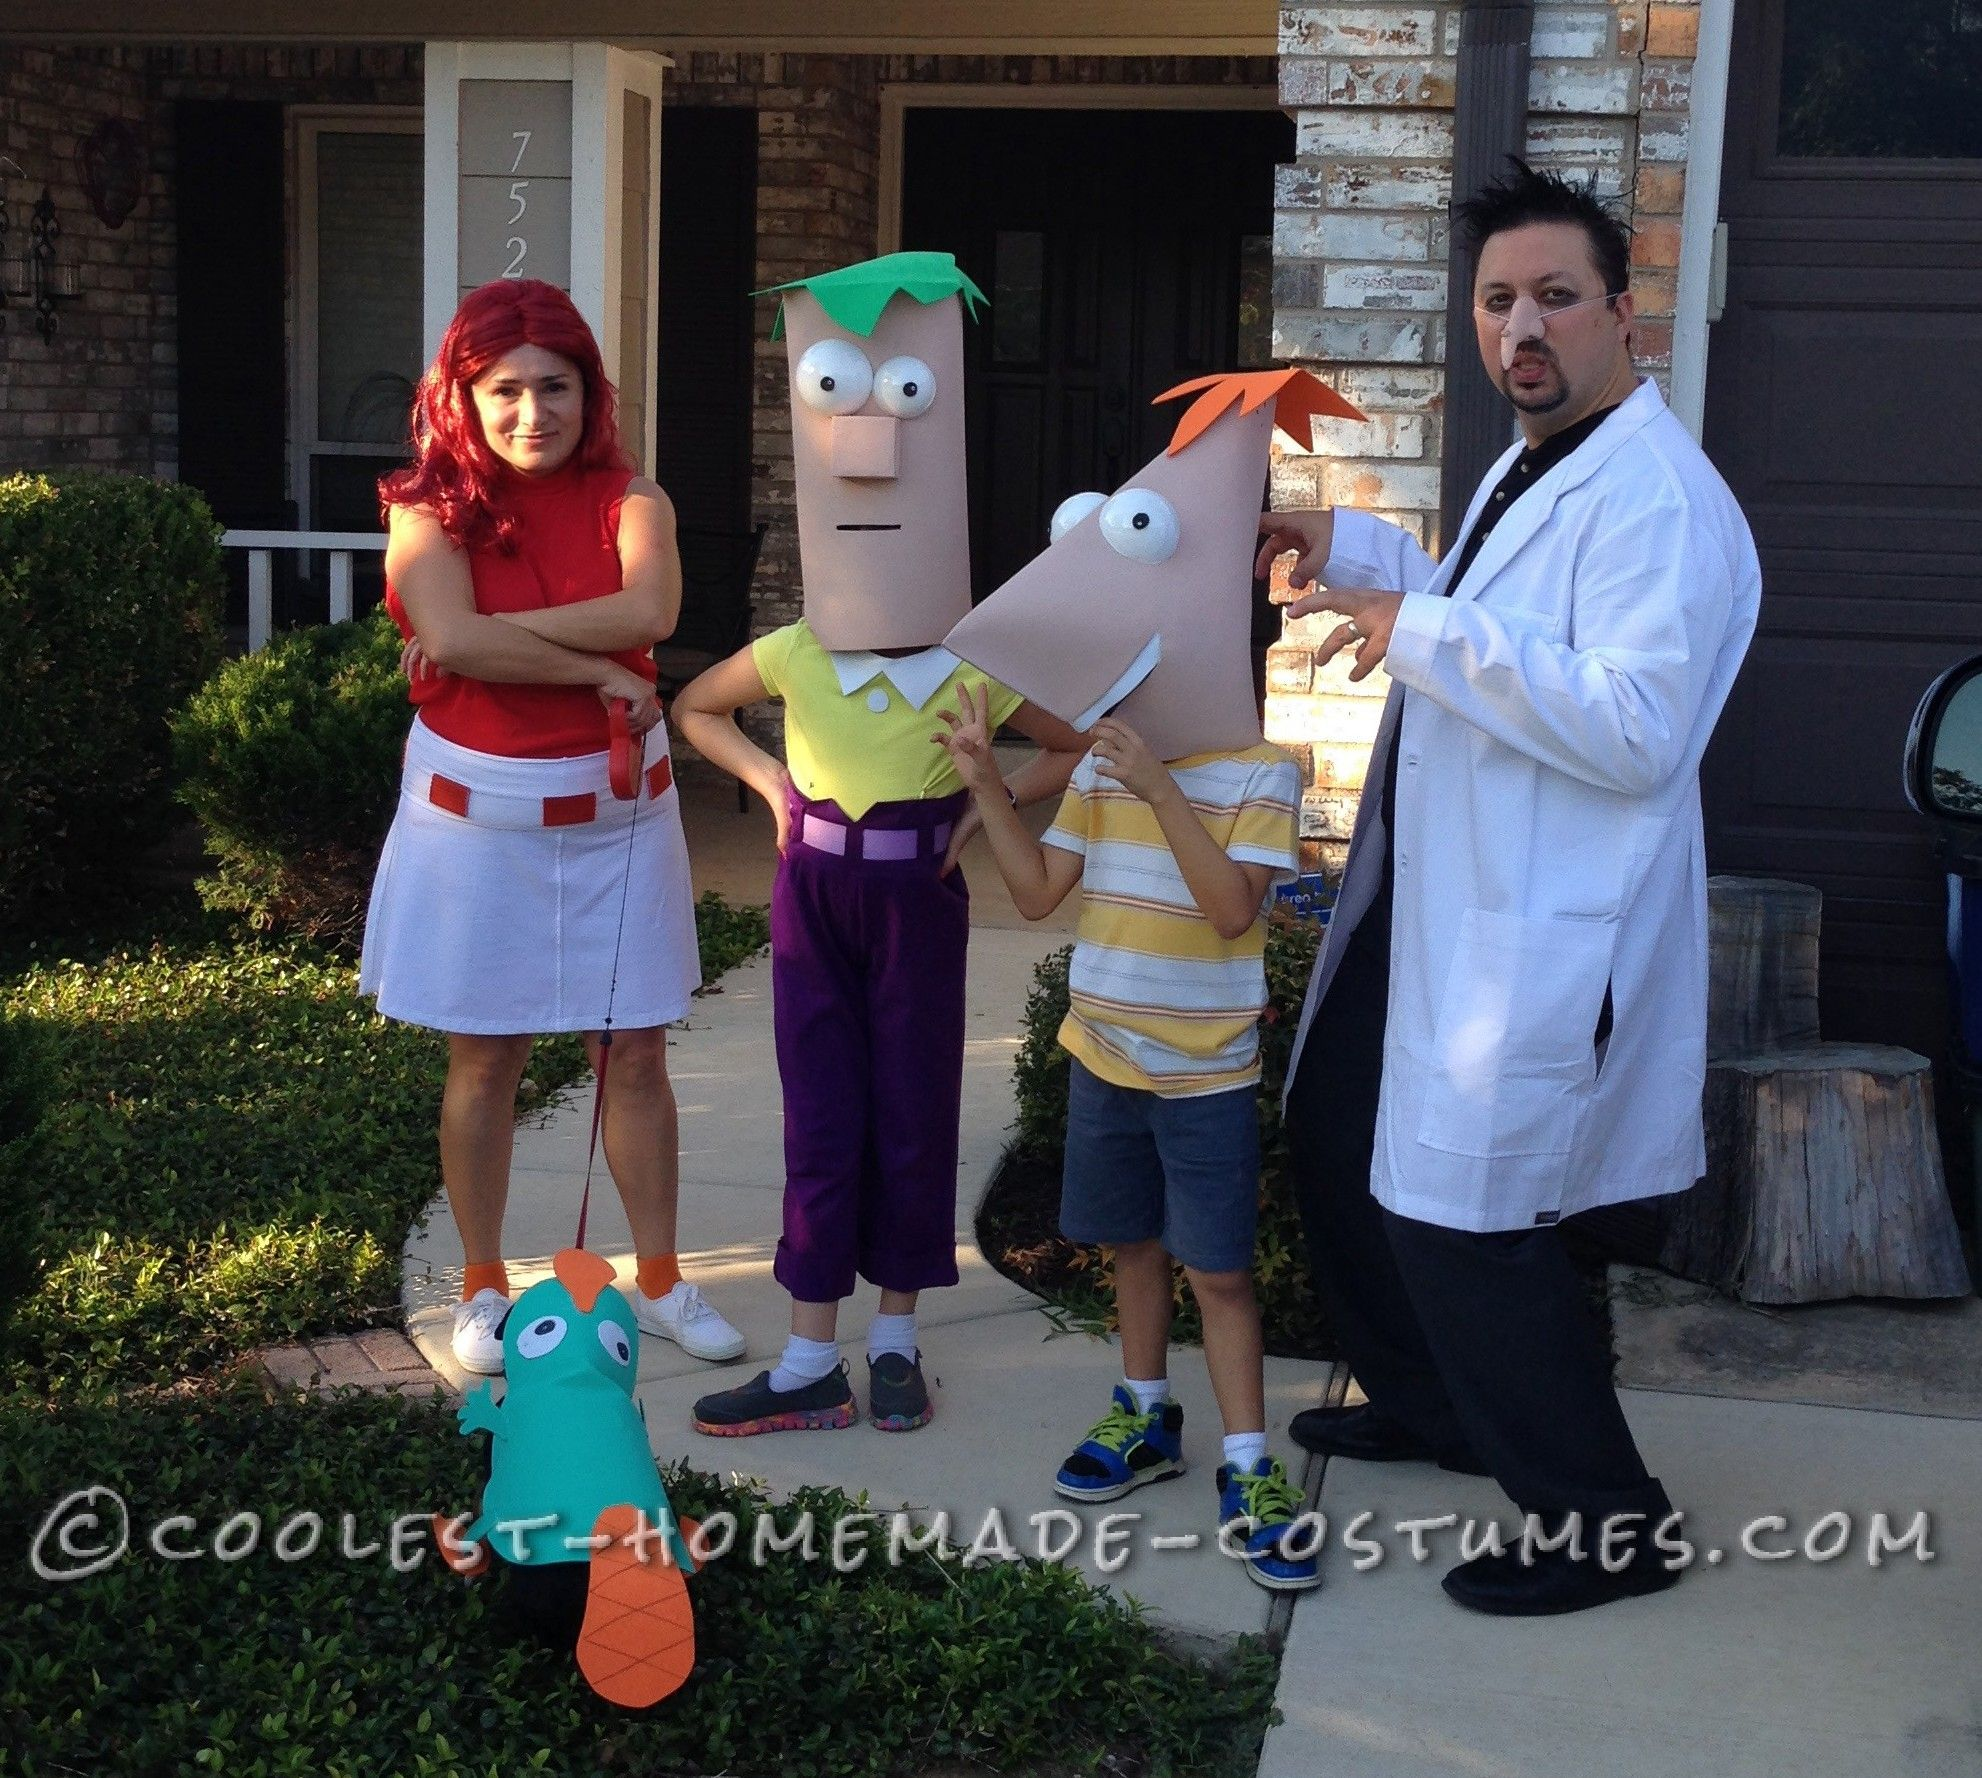 the cast of phineas and ferb family costume | coolest homemade